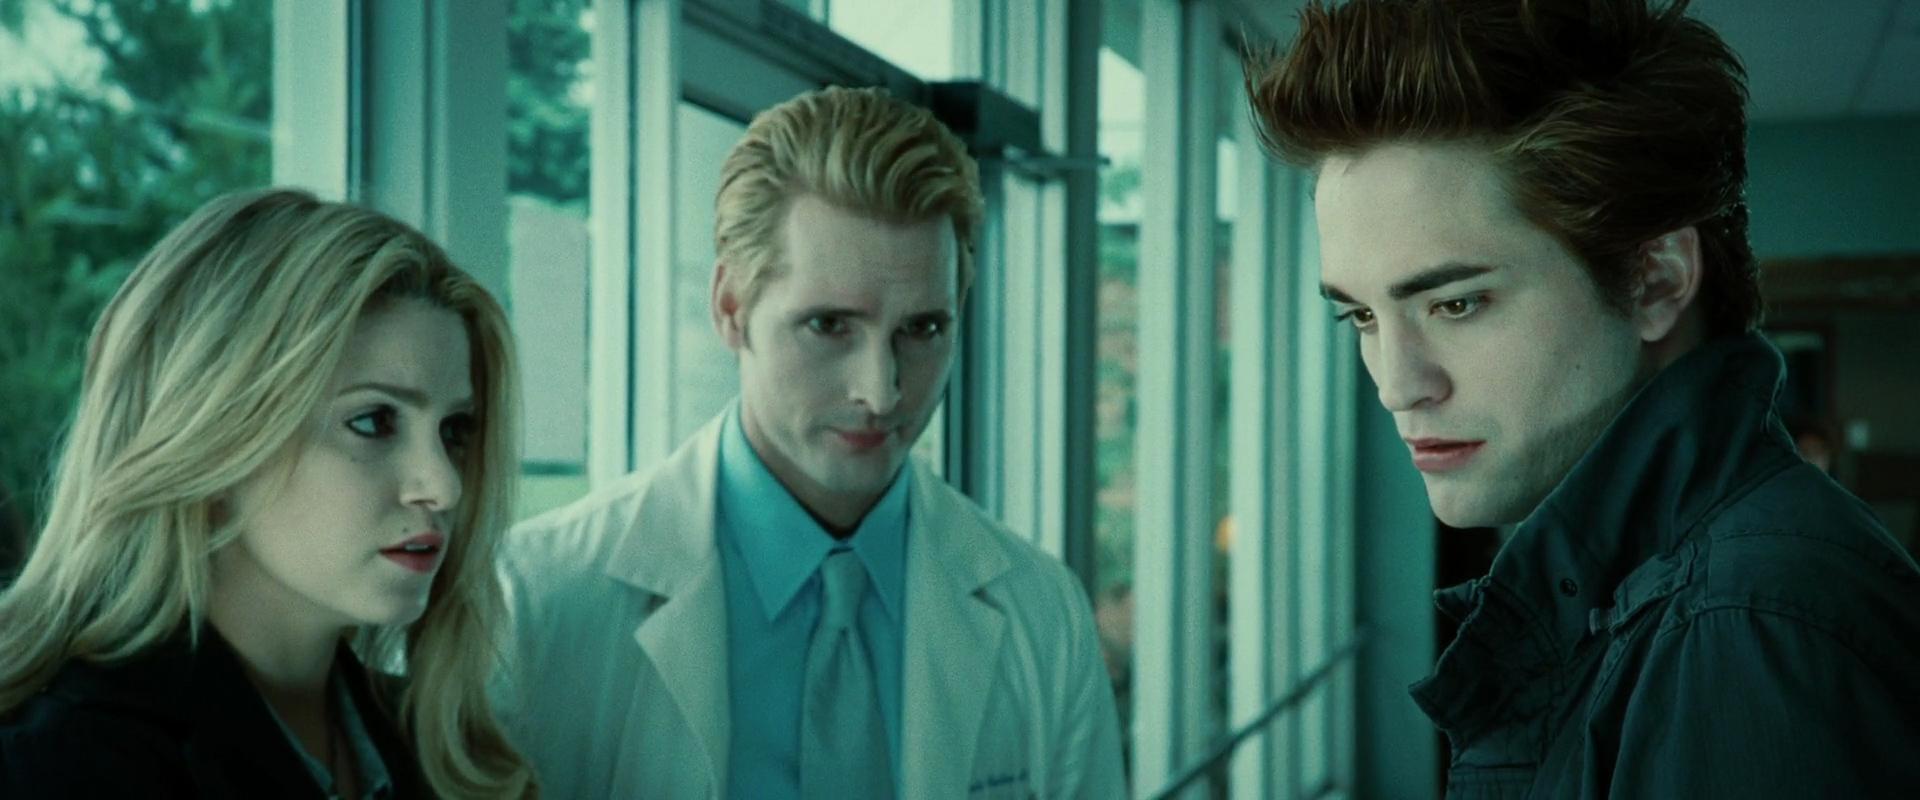 carlisle cullen images 1080p resolution carlisle images from